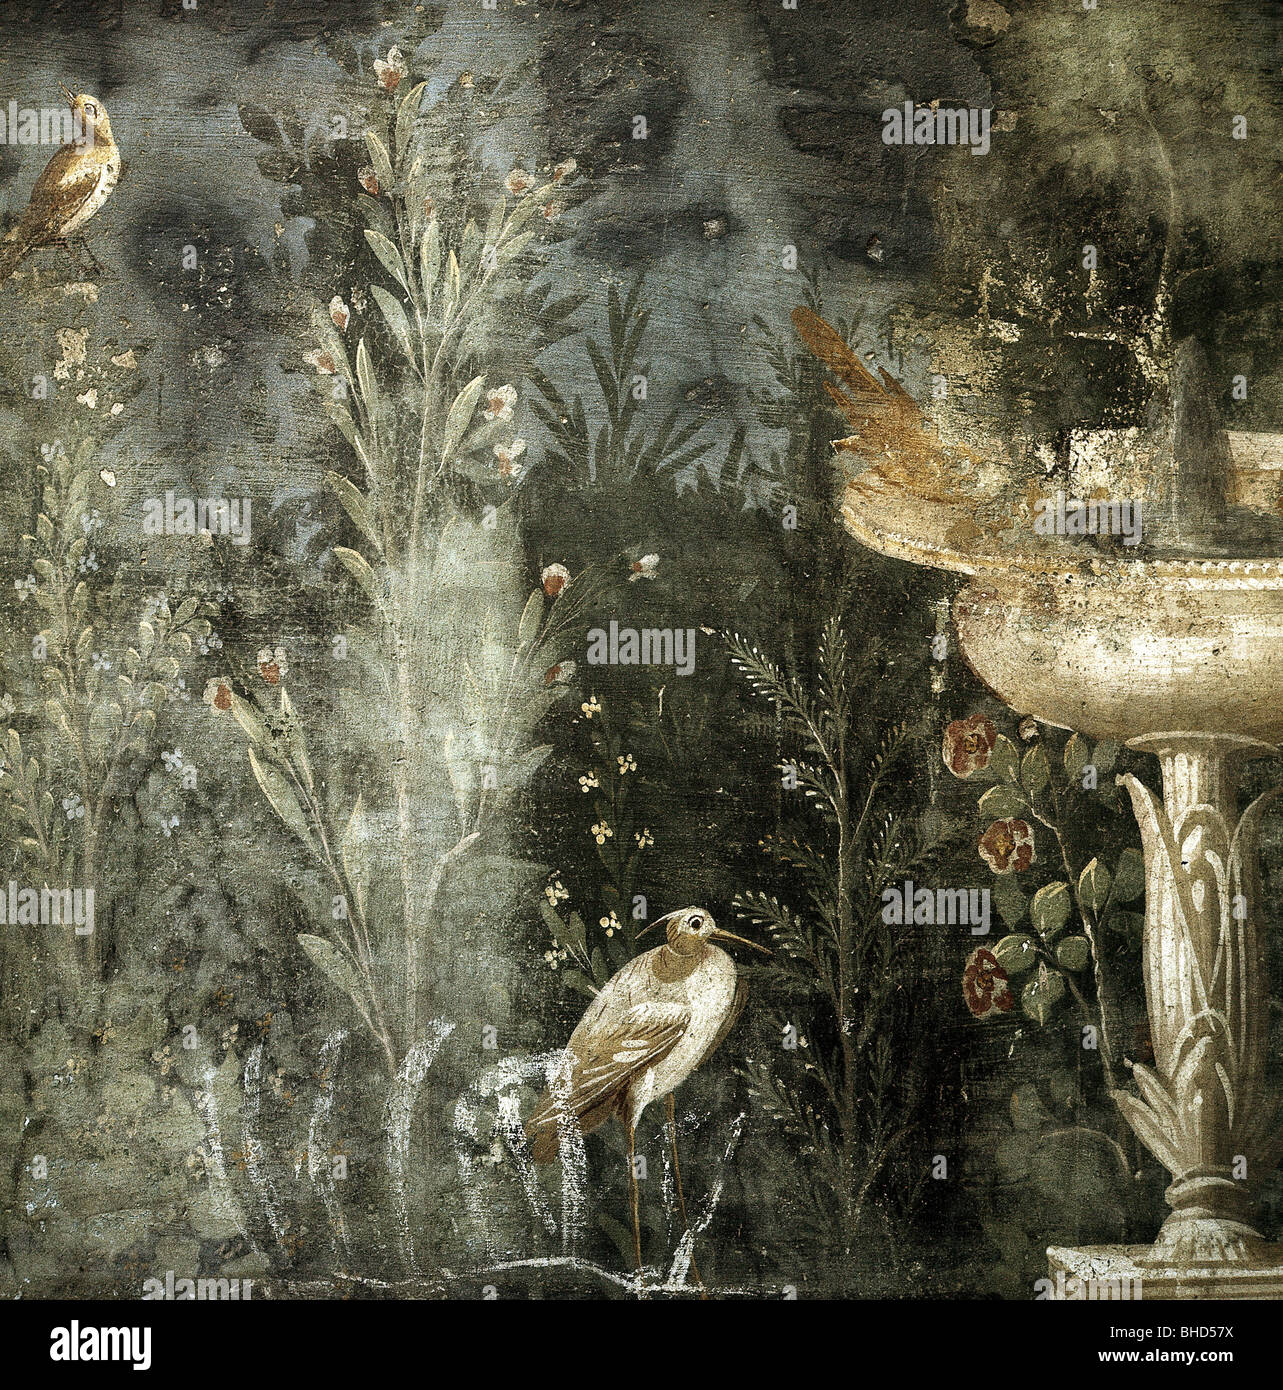 fine arts, Ancient World, Roman Empire, Pompeii, detail from a fresco, garden scene, House of Venus, Italy, historic, Stock Foto